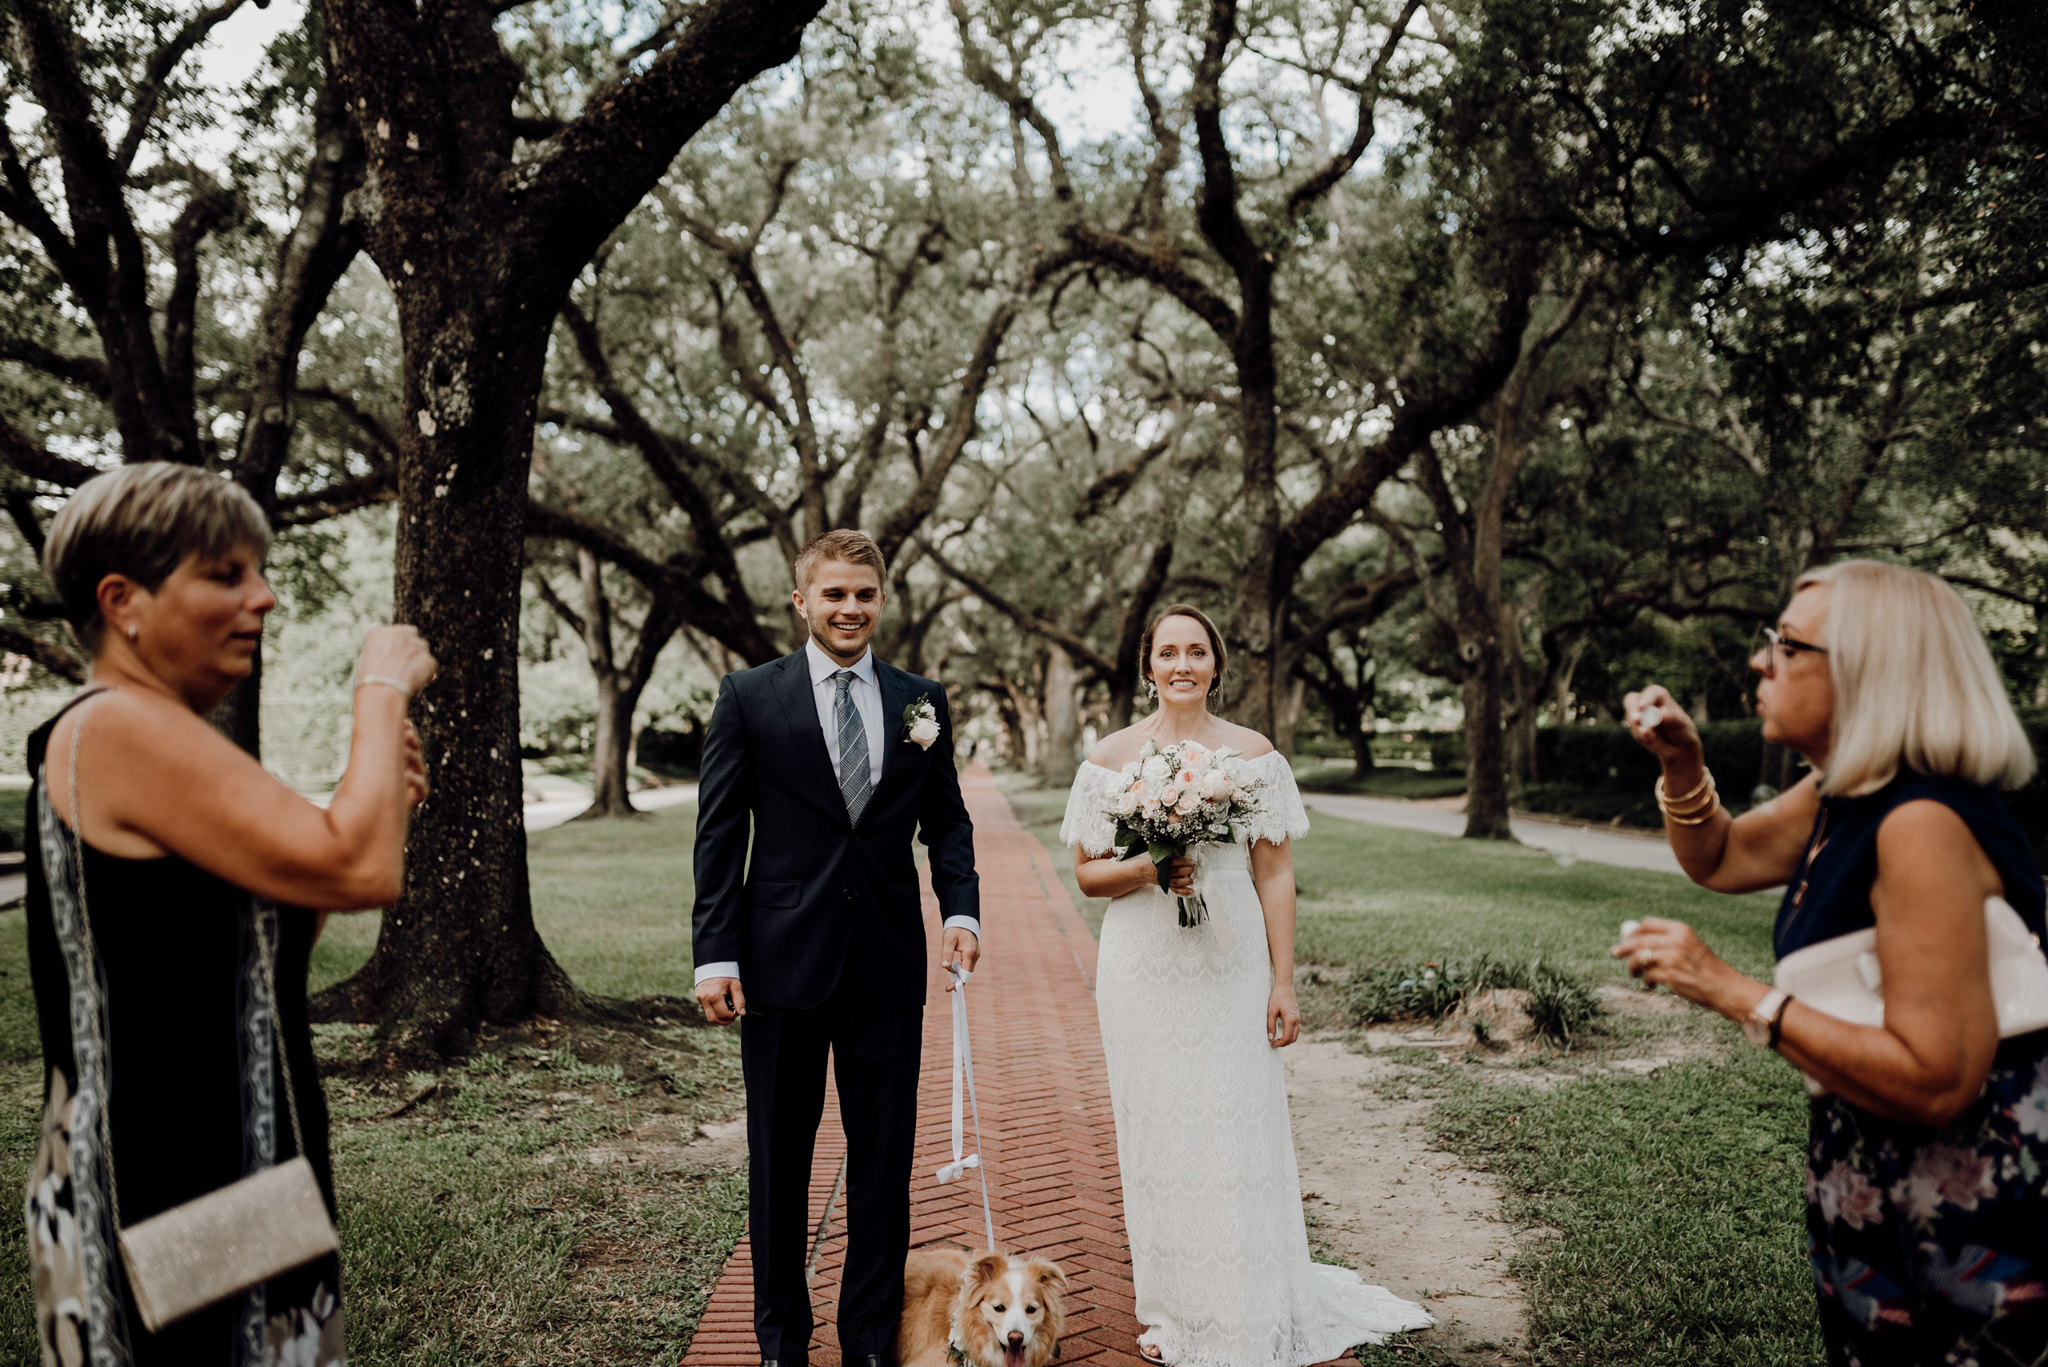 Houston Wedding Photographer-North Blvd Intimate Elopement- Houston Wedding Photographer -Kristen Giles Photography-45.jpg